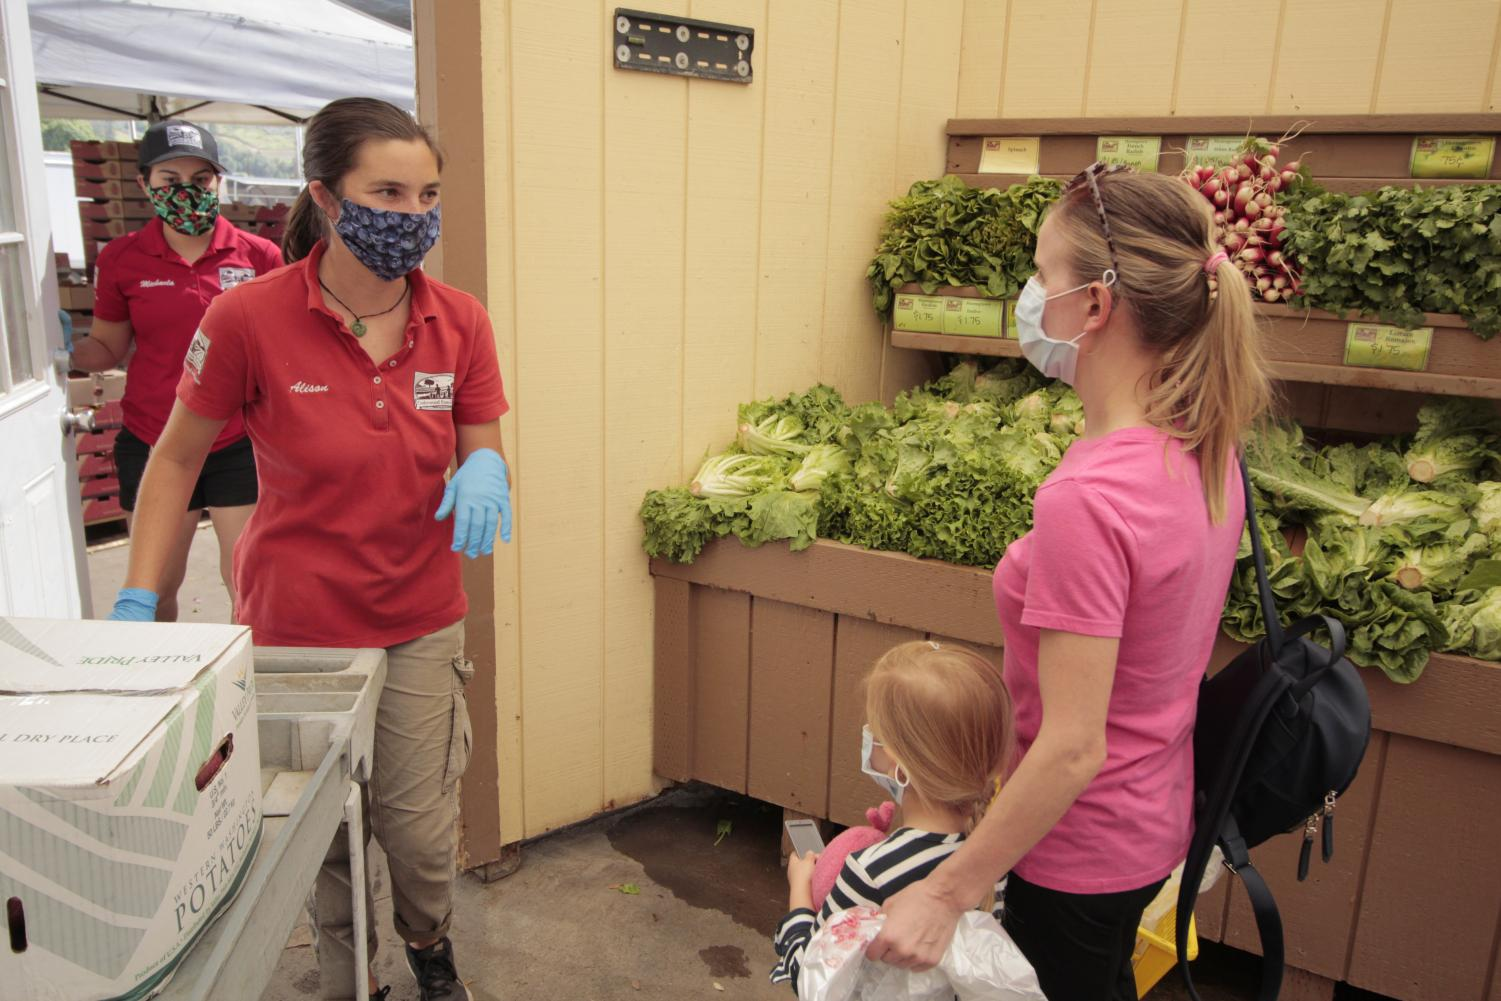 Underwood Farms employee Alison Hall helps Lena Pierson and Ella Pierson, 3, from Simi Valley as they shop for produce in Moorpark on April 28, 2020.